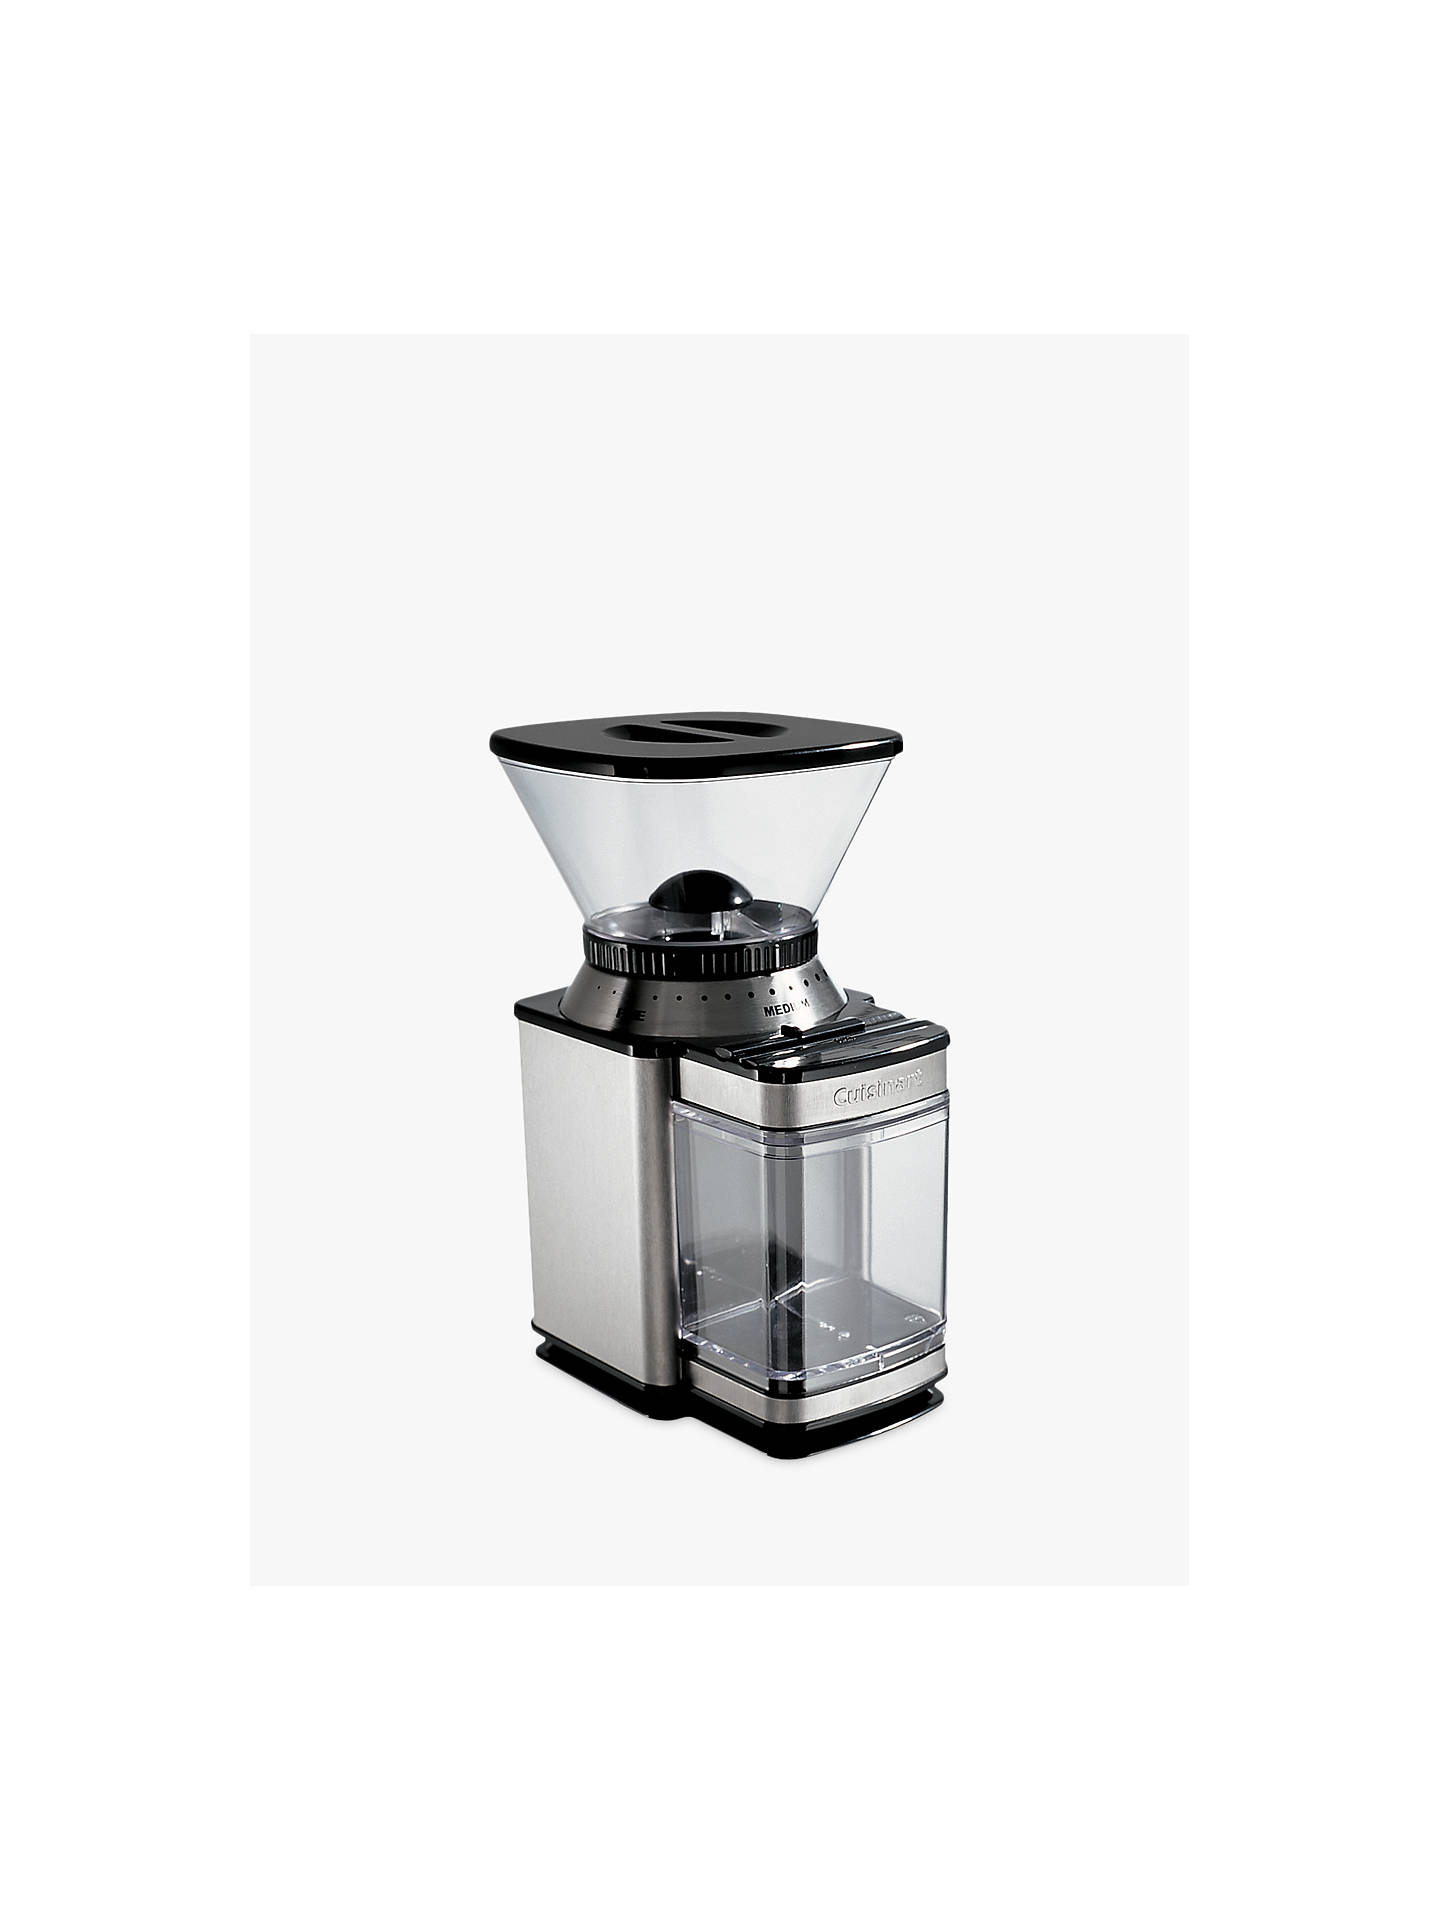 BuyCuisinart DBM8U Auto Burr Coffee Grinder Online at johnlewis.com